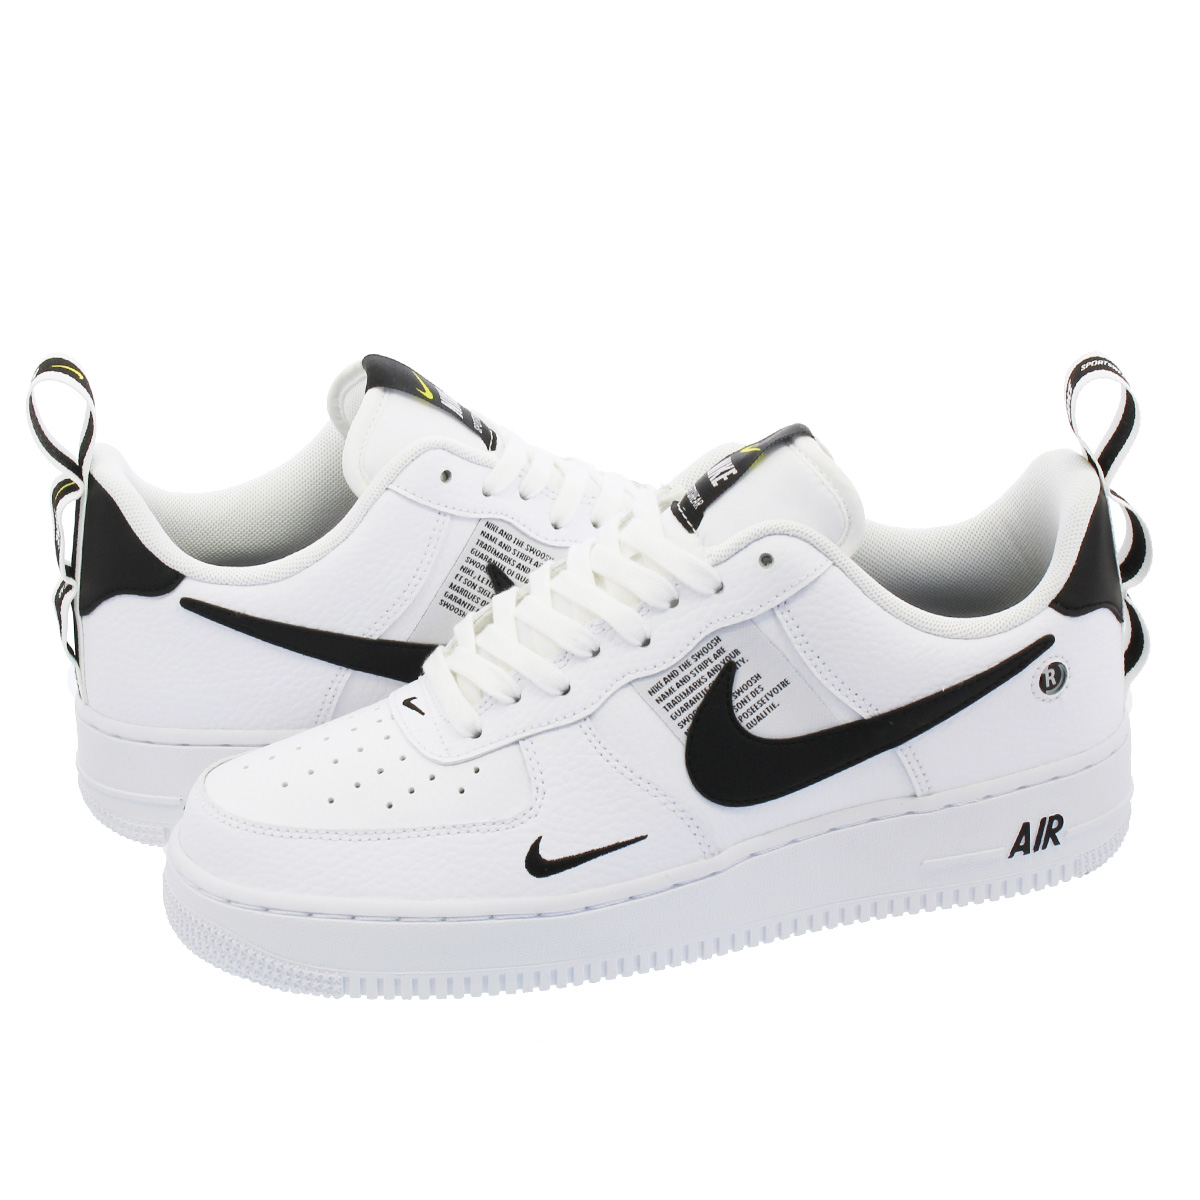 pretty nice fdb30 51621 NIKEAIRFORCE1 07LV8UTILITYナイキエアフォース1 07LV8ユーティリティWHITE WHITE BLACK  TOURYELLOWaj7747